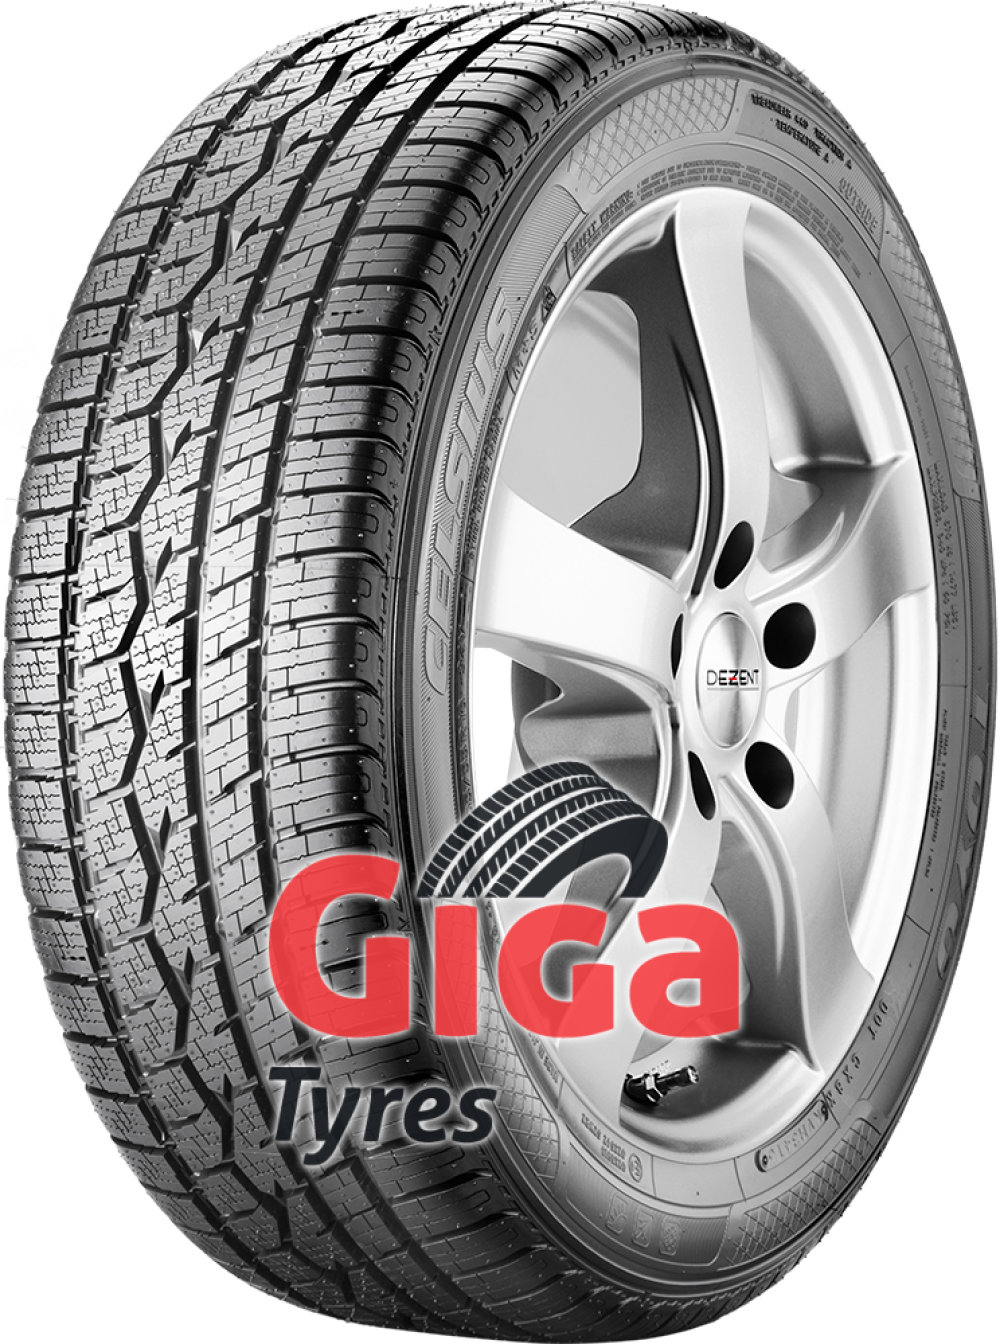 Toyo Celsius ( 205/45 R16 83H , with rim protection ridge (FSL) )